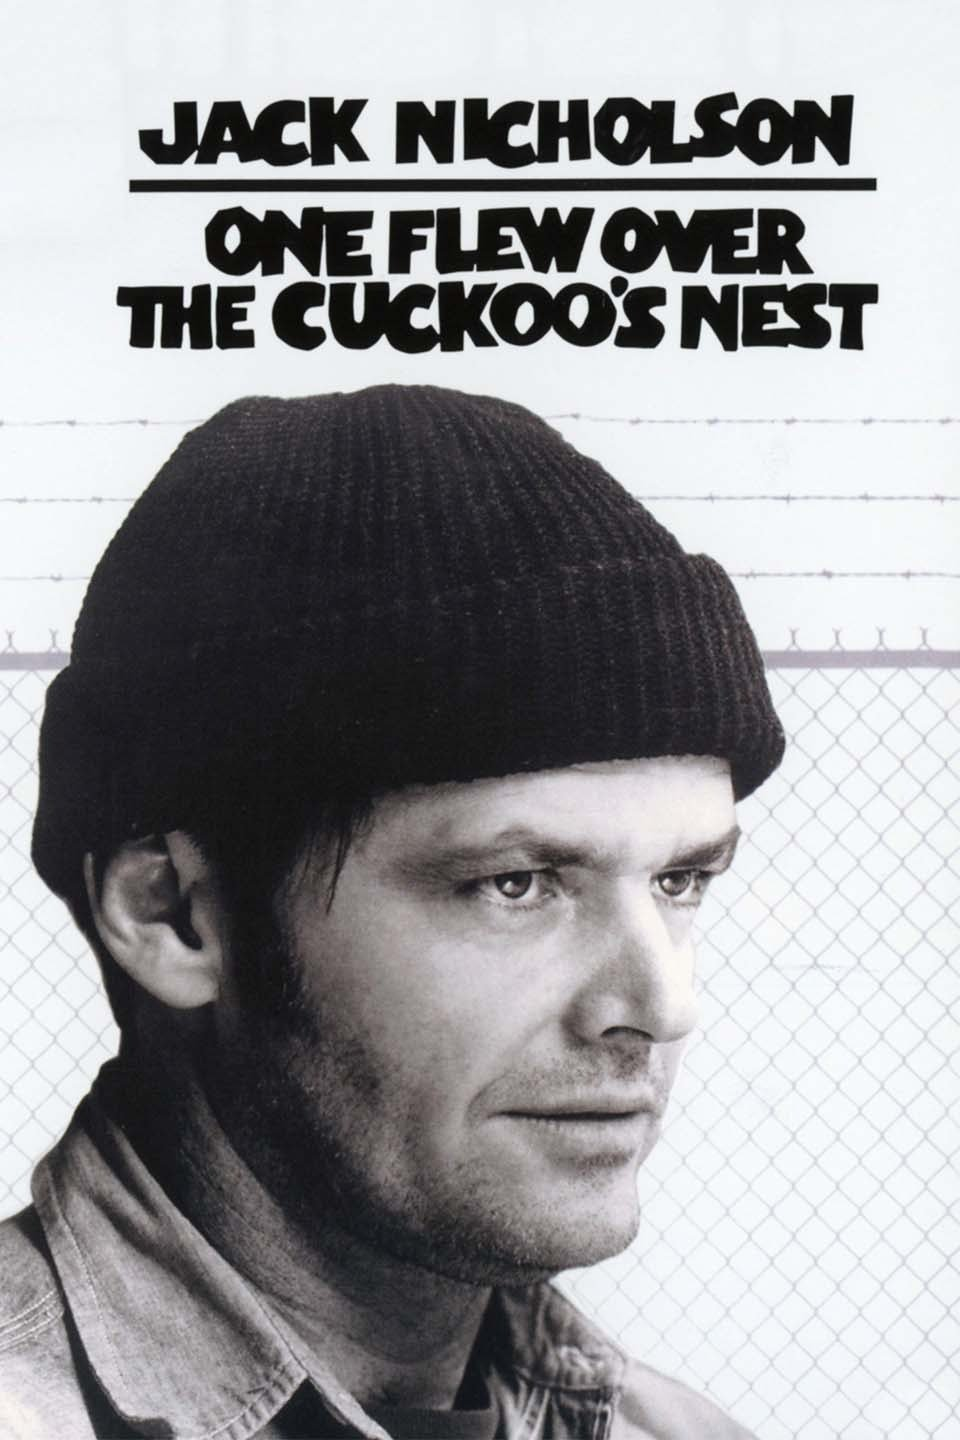 Image result for movie one who flew over the cuckoo's nest